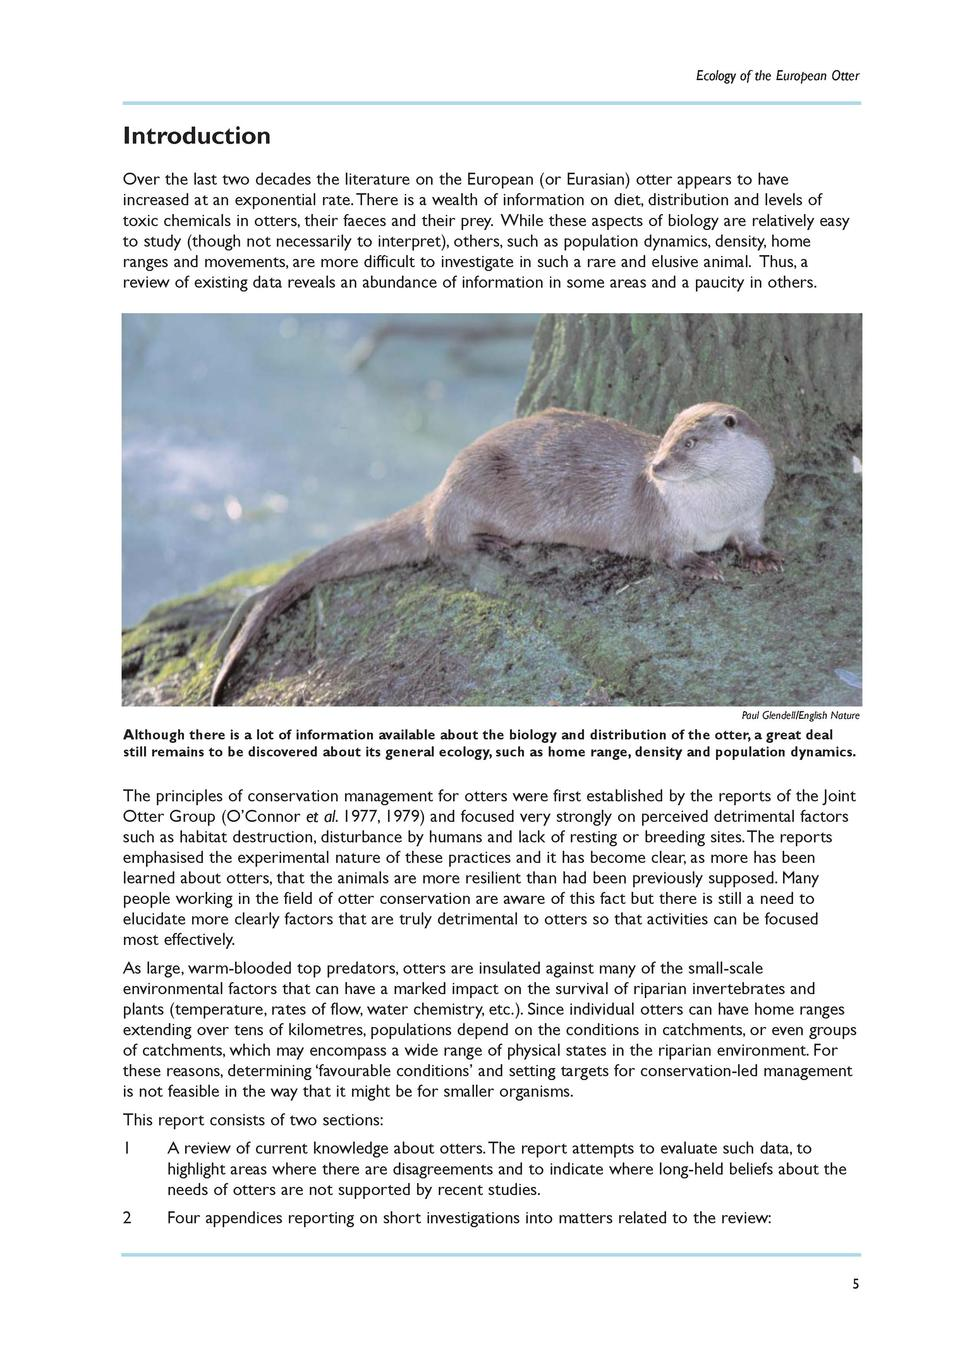 Ecology of the European Otter  Introduction Over the last two decades the literature on the European  or Eurasian  otter a...